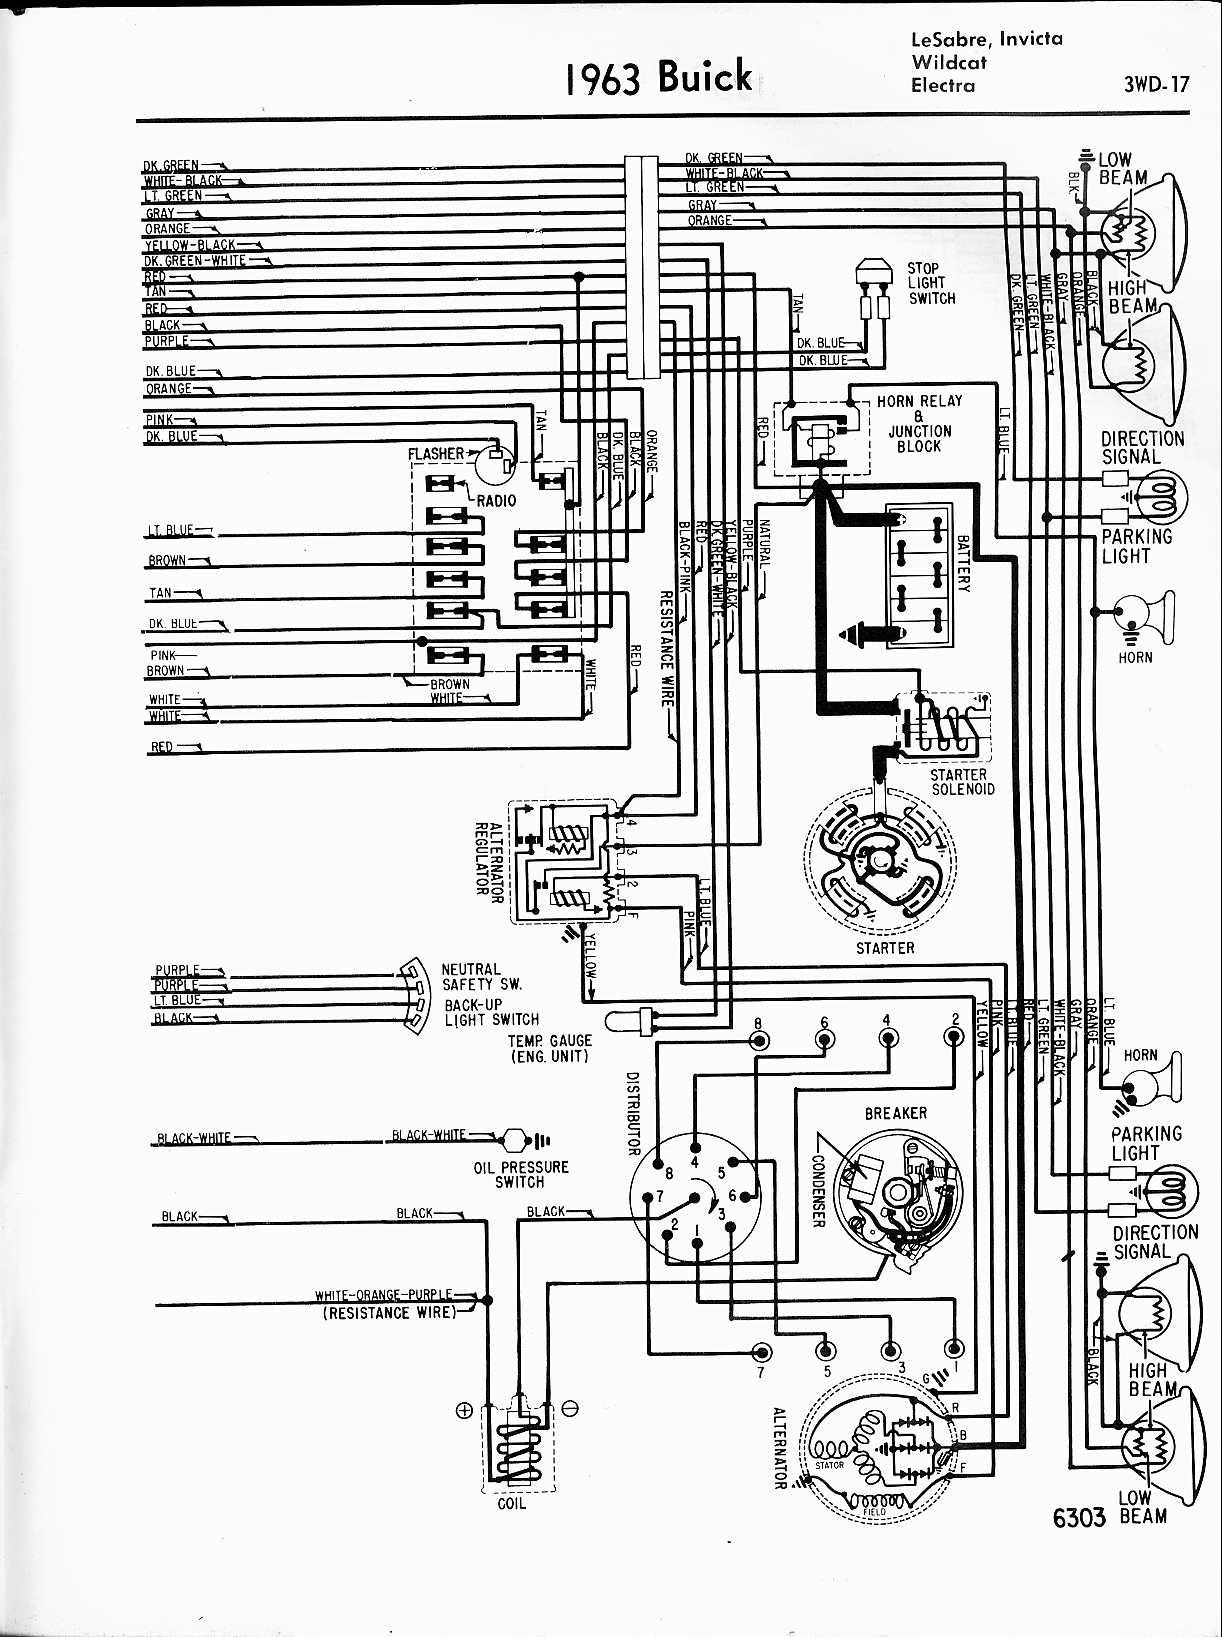 1967 buick wildcat wiring diagram